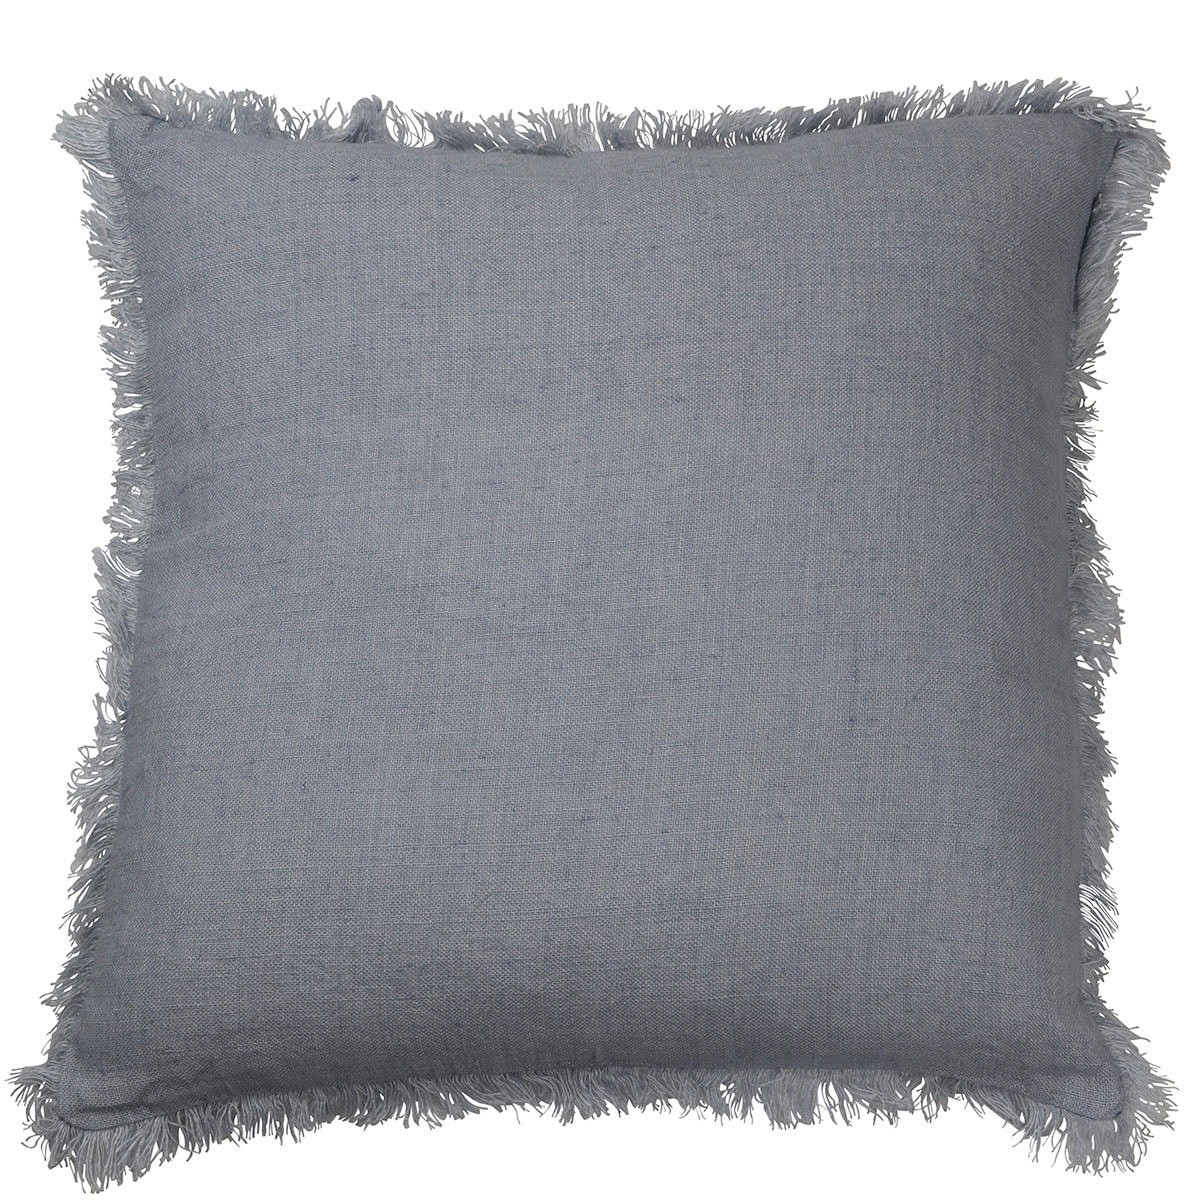 Camargue Frech Yarn Euro Cushion Cover, French Blue